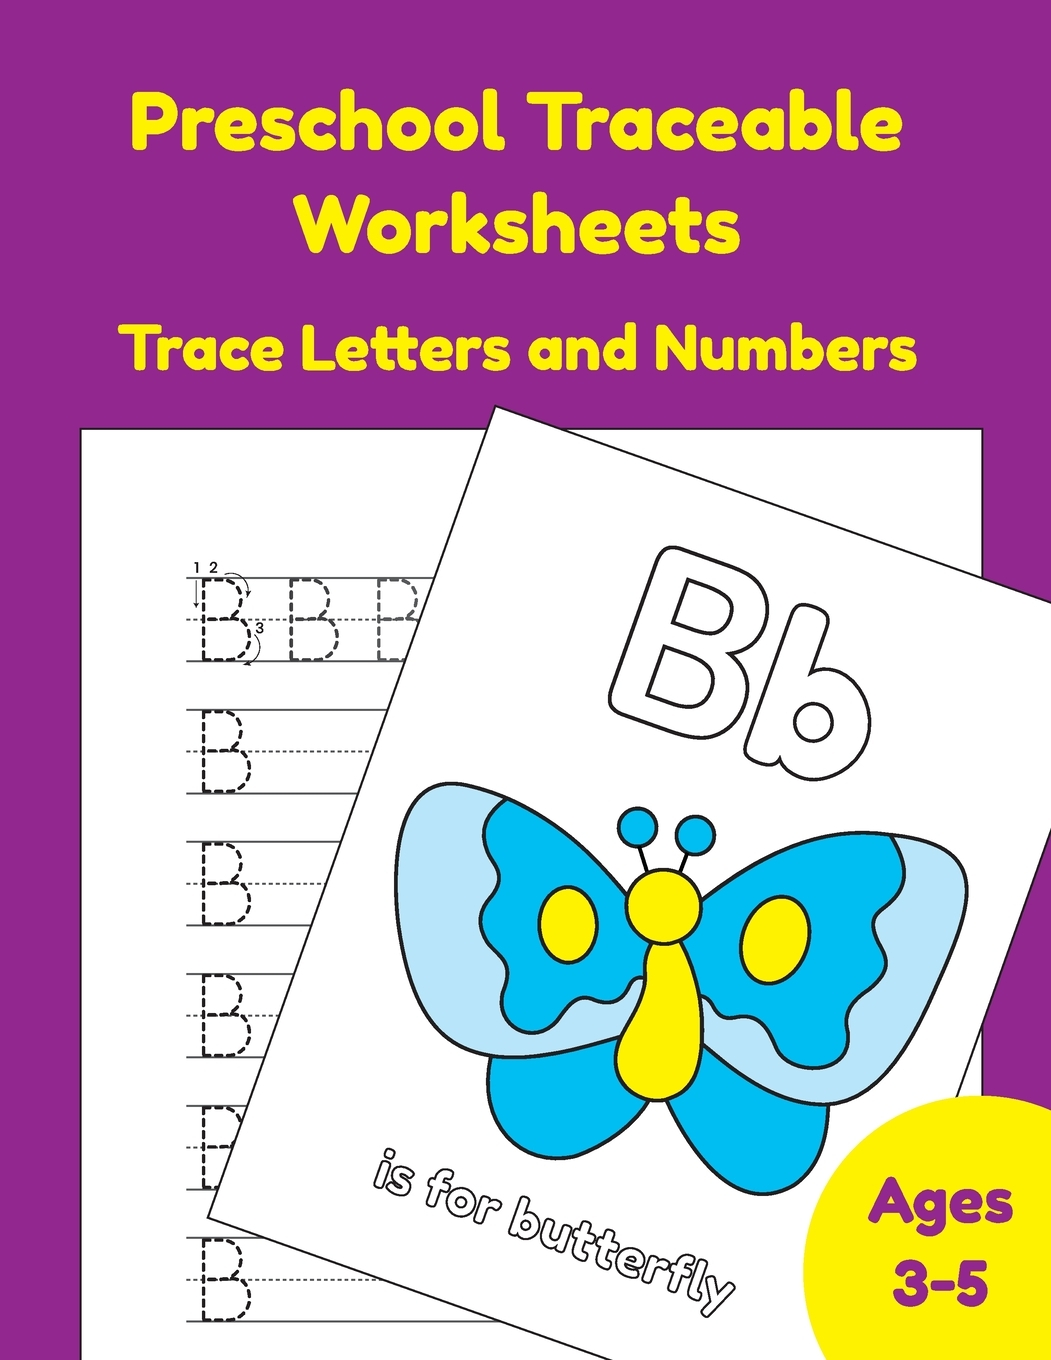 Preschool Traceable Worksheets Trace Letters And Numbers